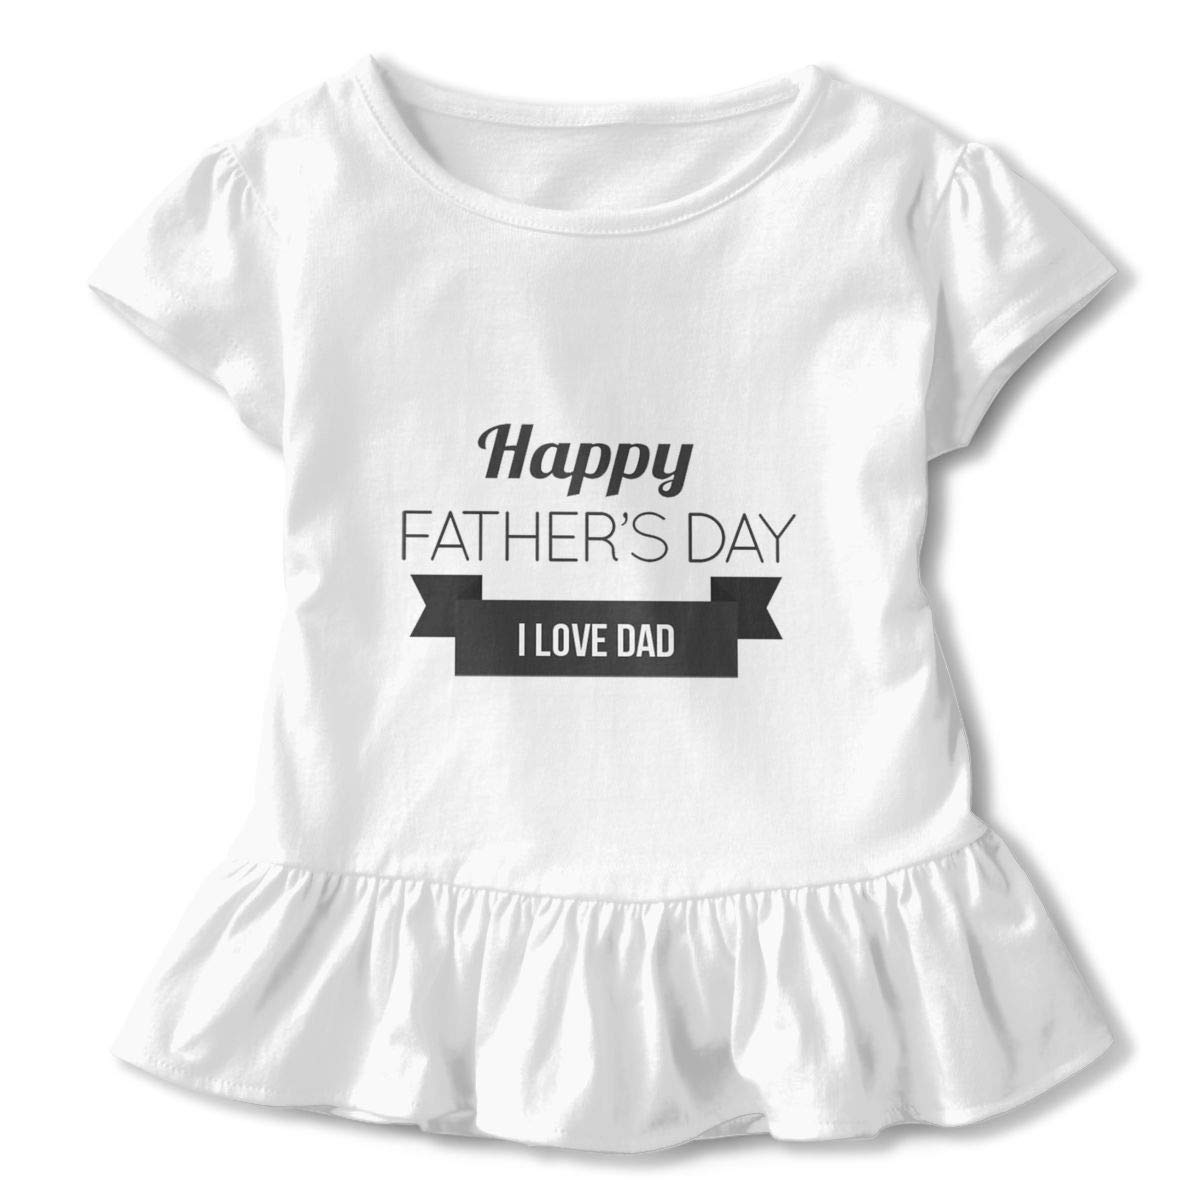 Happy Fathers Day I Love Dad White 2-6 T Toddler Baby Girls 100/% Cotton Short Sleeve T Shirt Top Blouse Tee Clothes